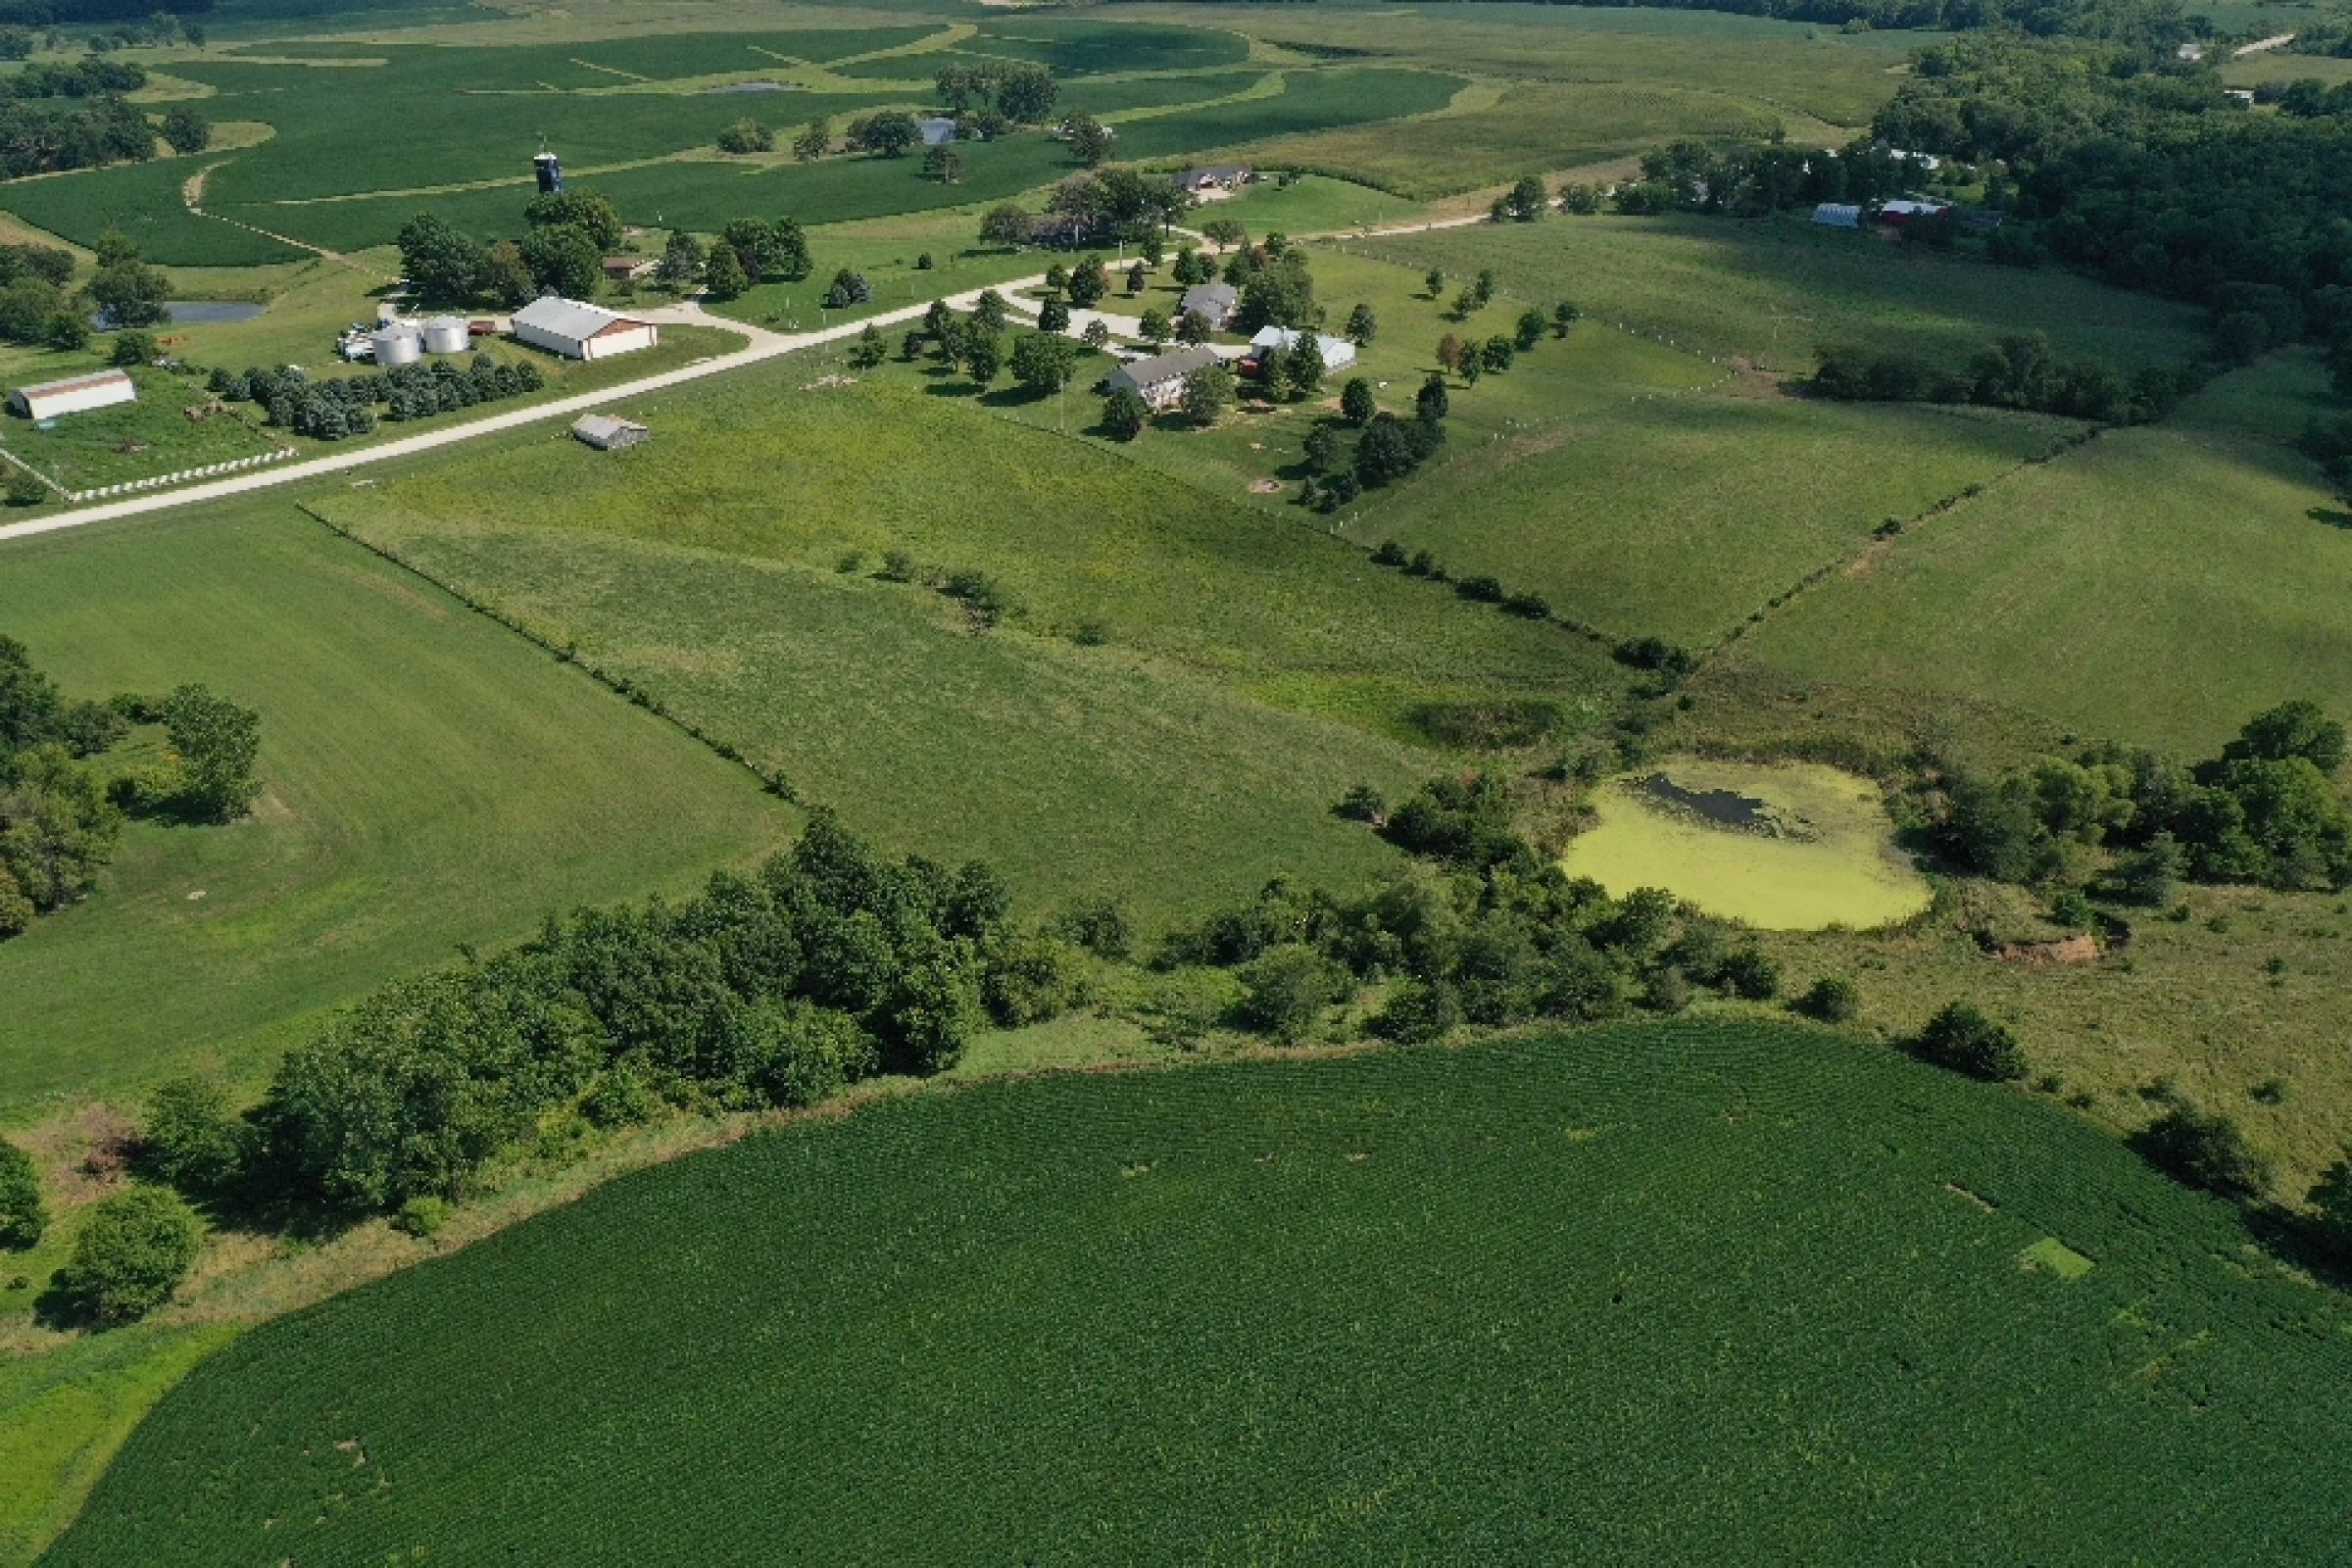 residential-land-warren-county-iowa-29-acres-listing-number-15120-8-2020-08-20-195123.jpg